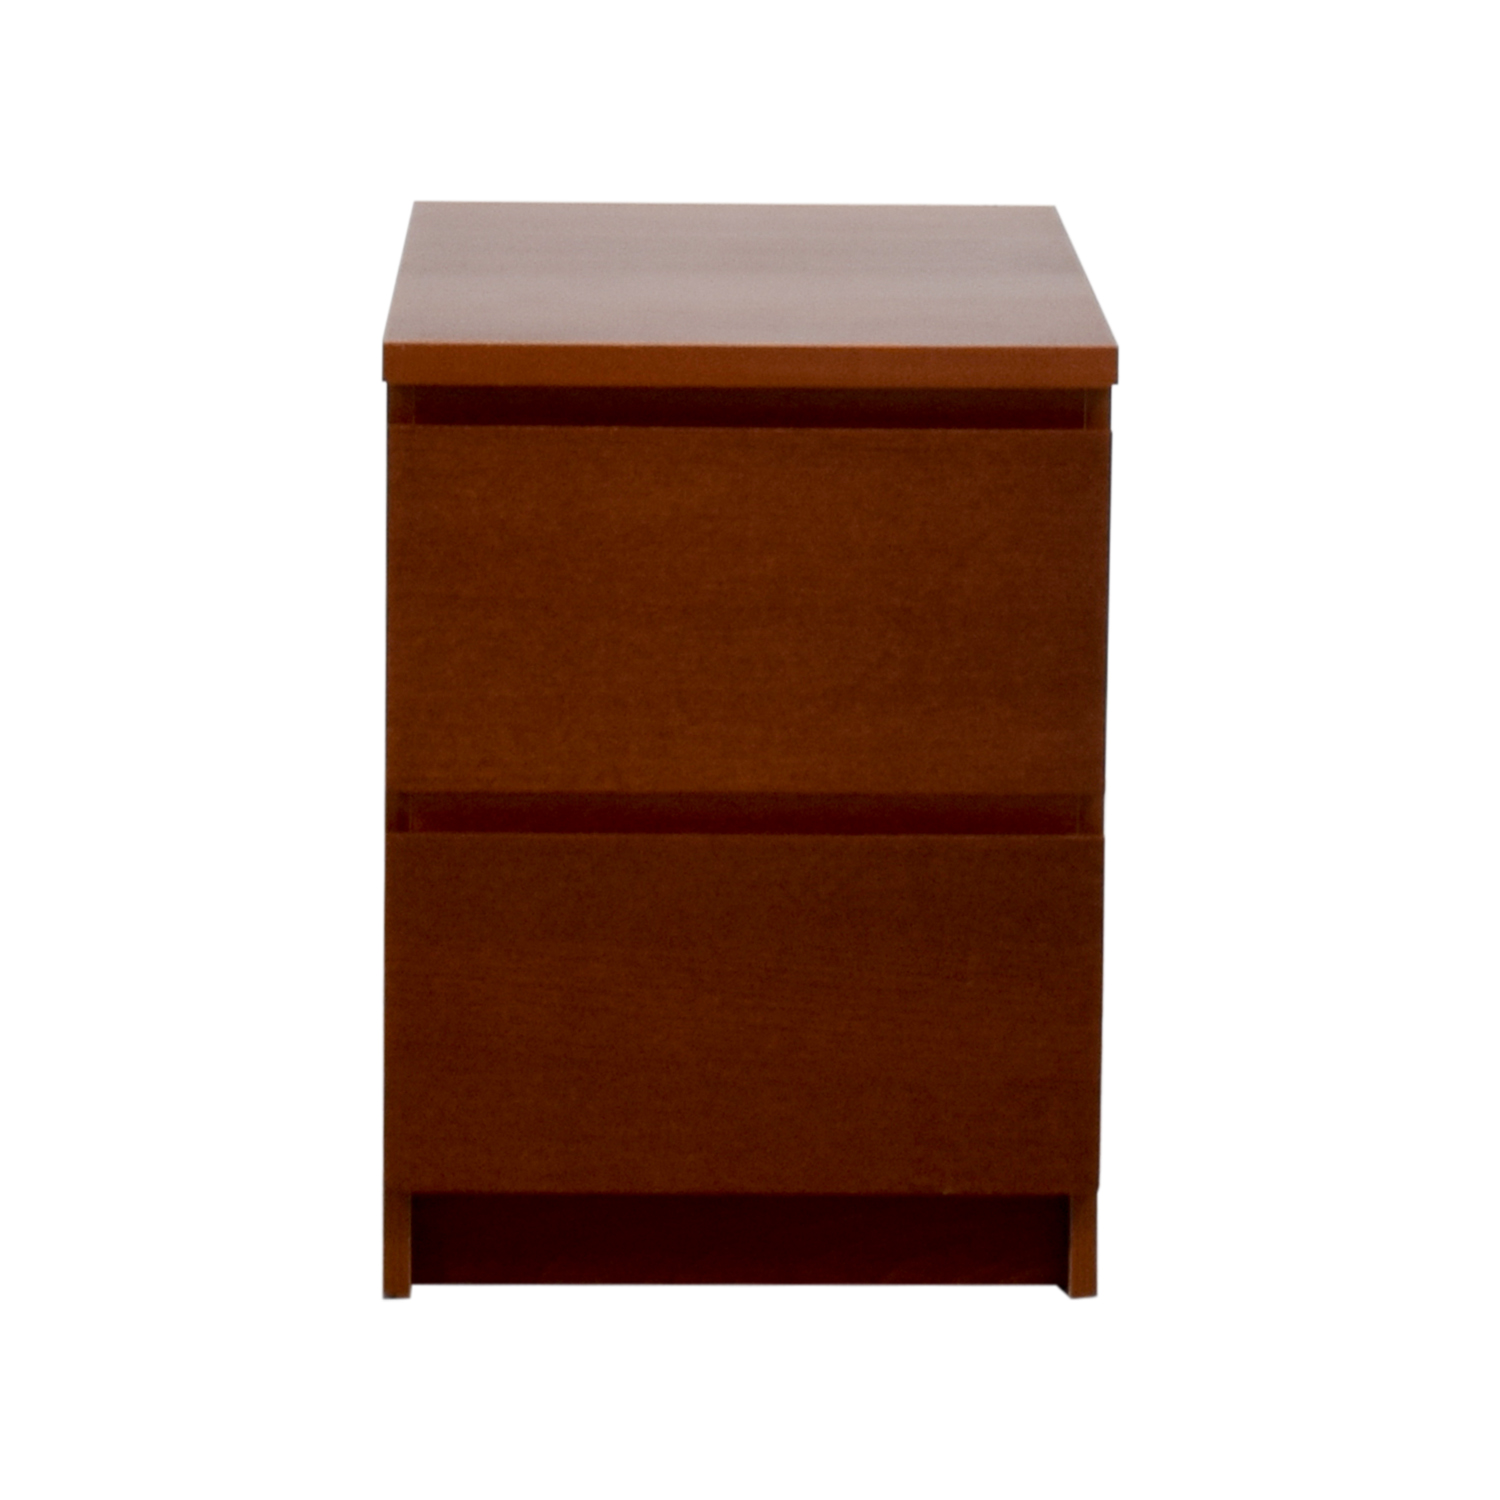 IKEA IKEA Wooden Two-Drawer Nightstand for sale